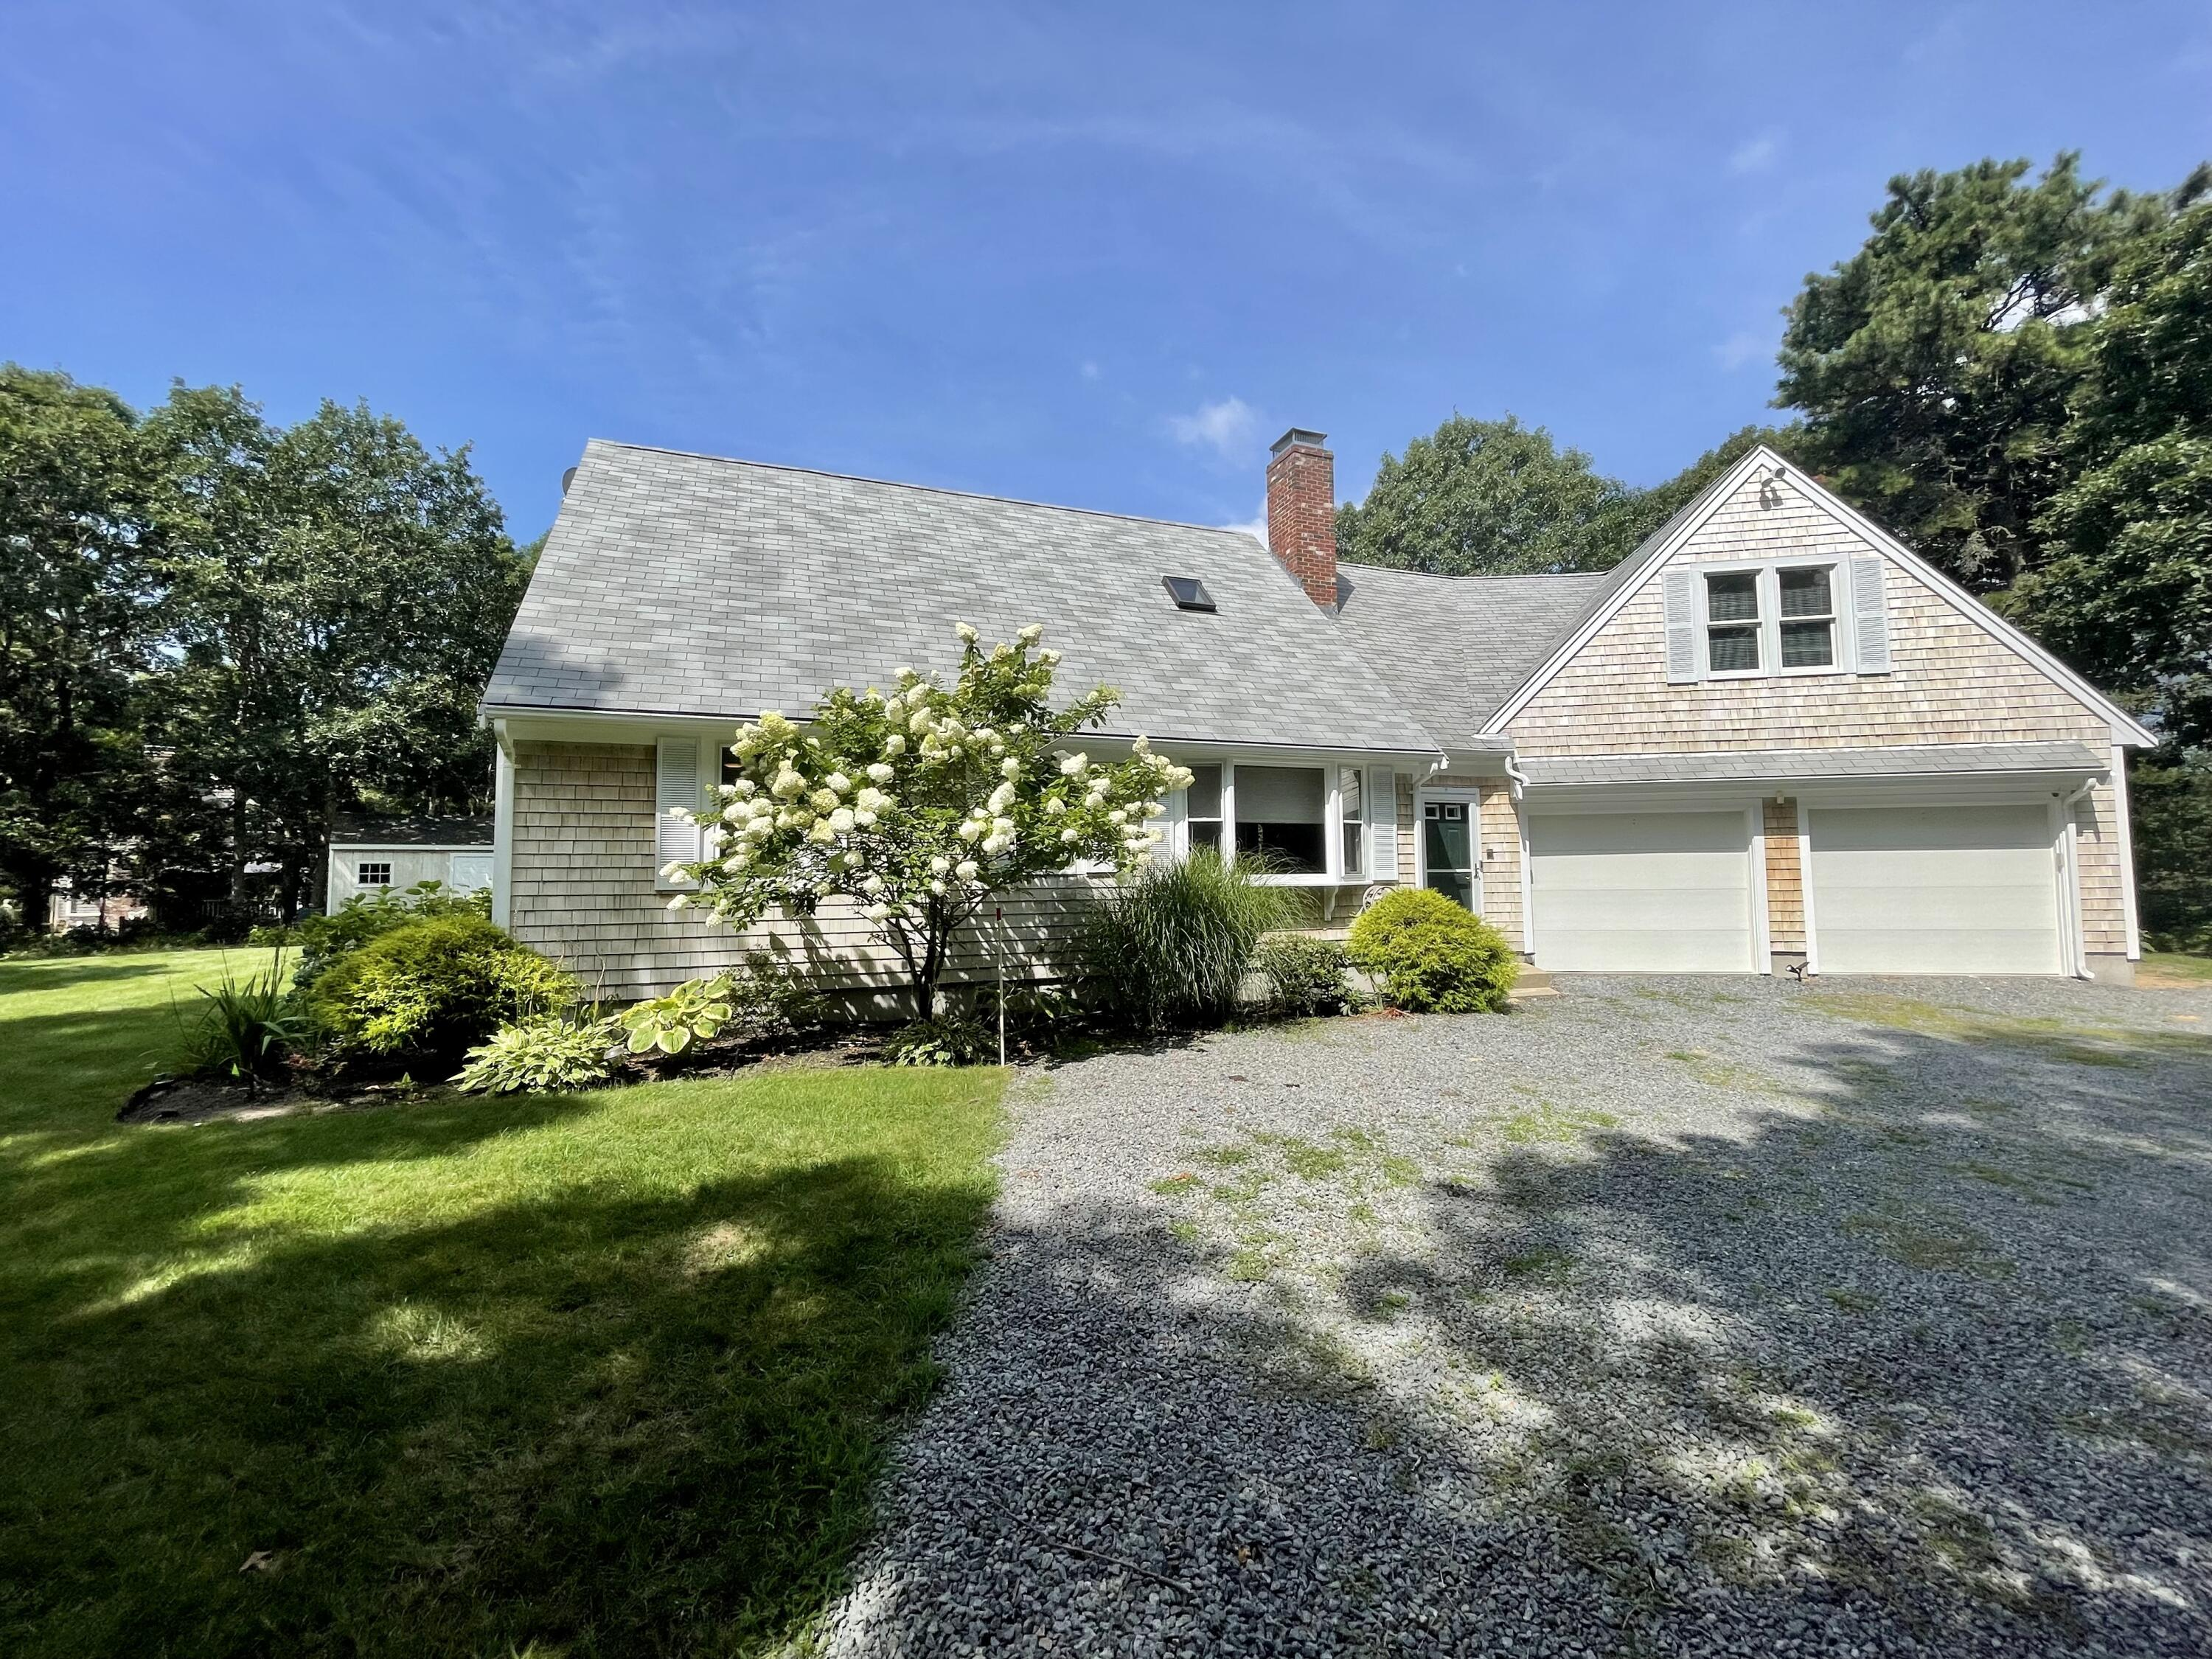 85 Abells Road, West Yarmouth MA, 02673 details